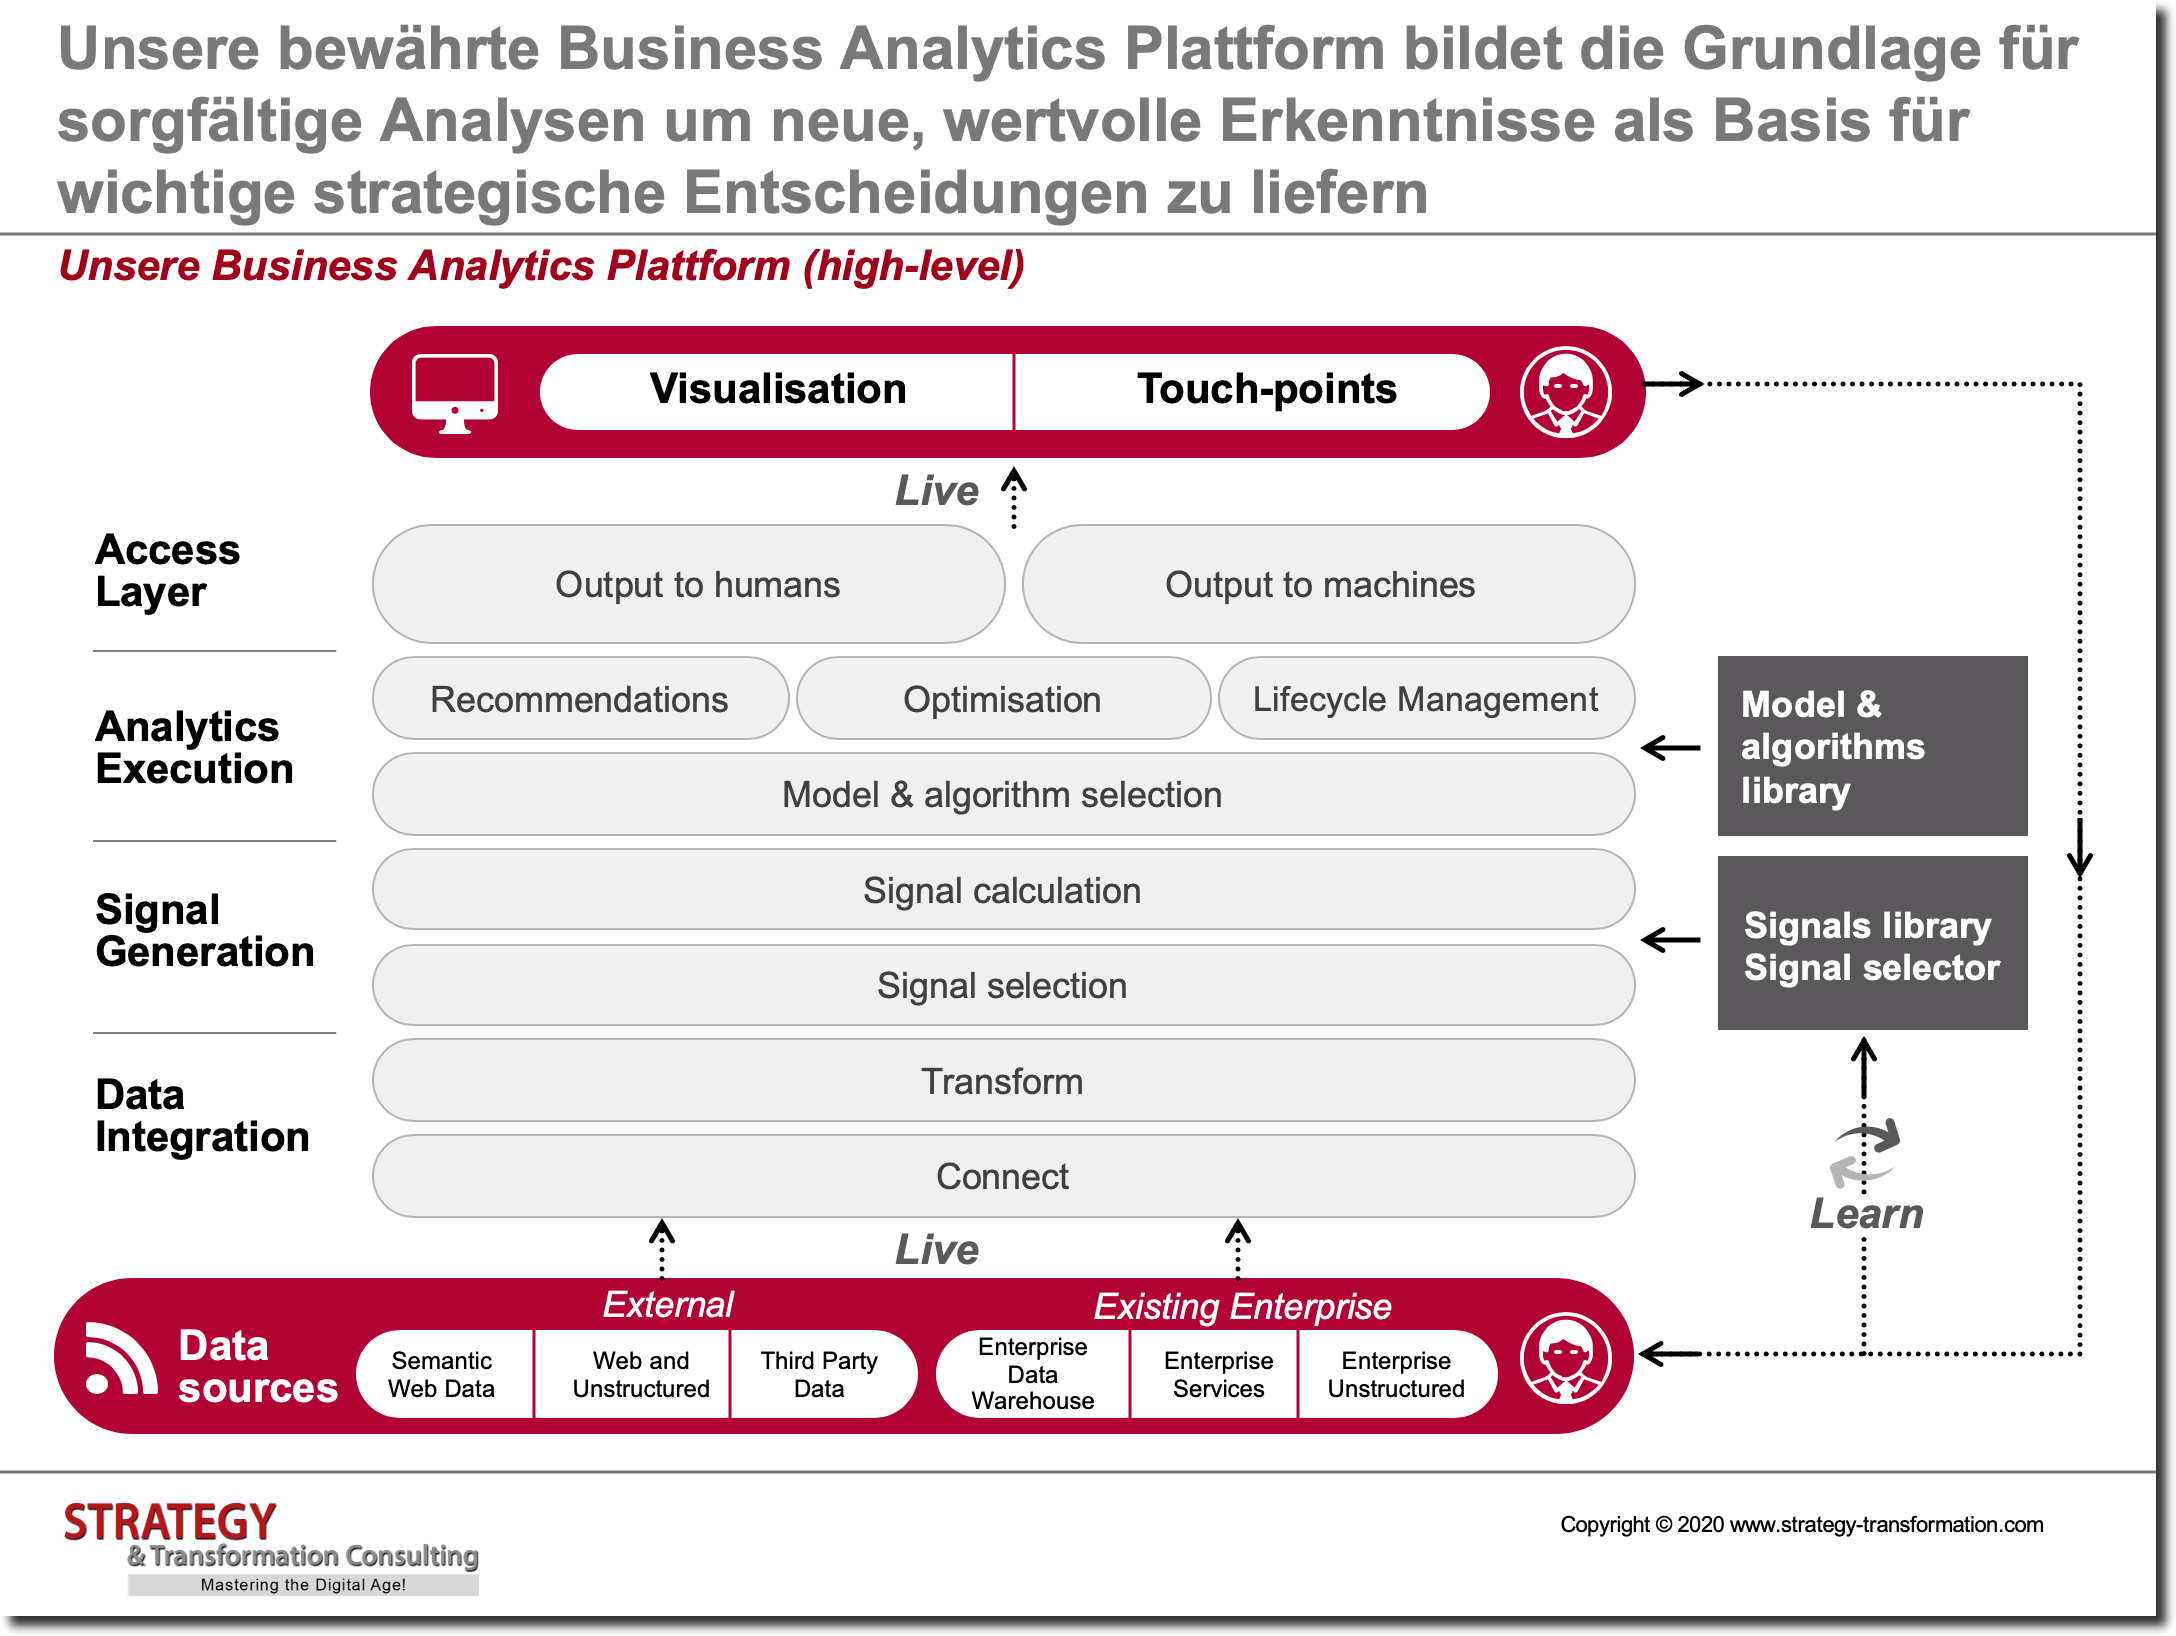 Unser Business Analytics Plattform (high-level)